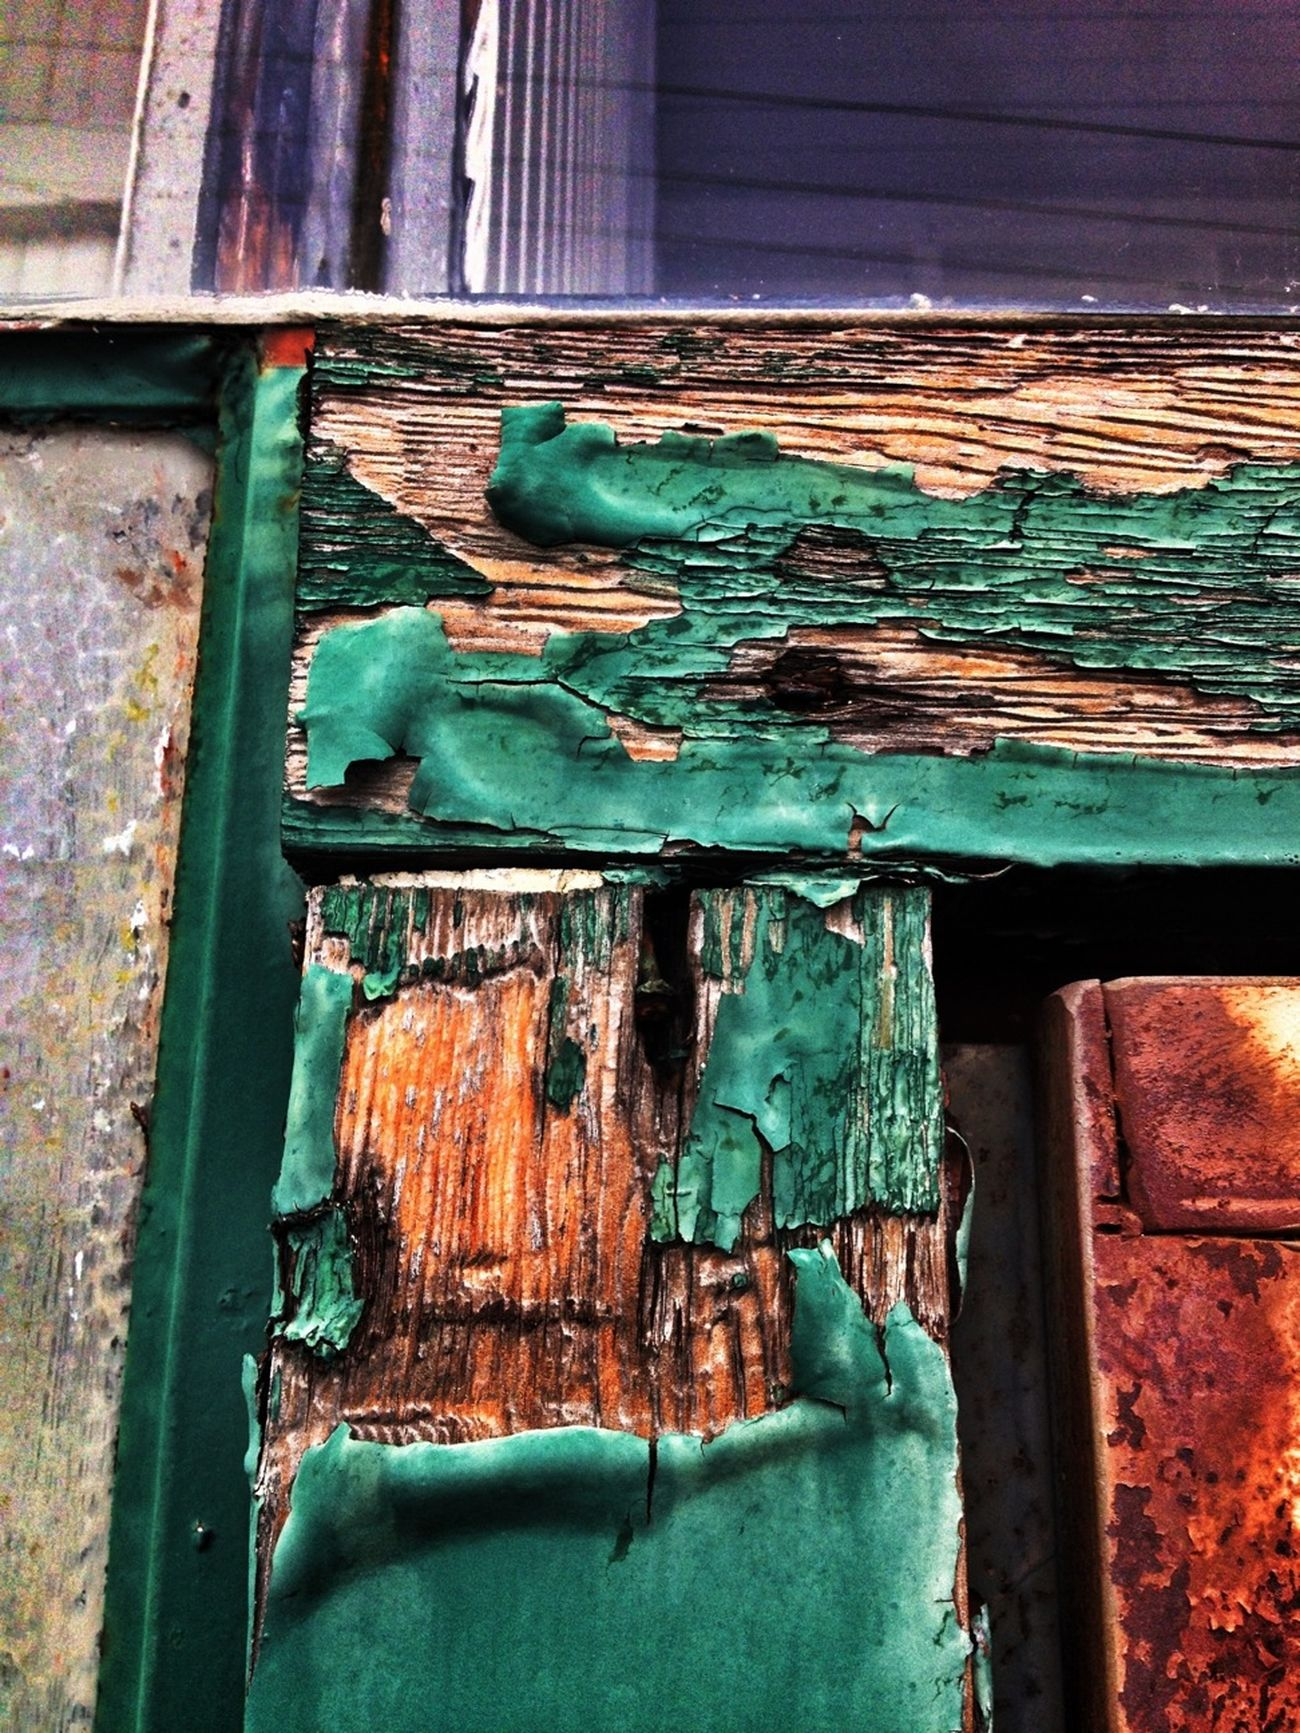 Paint Decay Layers And Textures Grimelords Don't You Love Green??